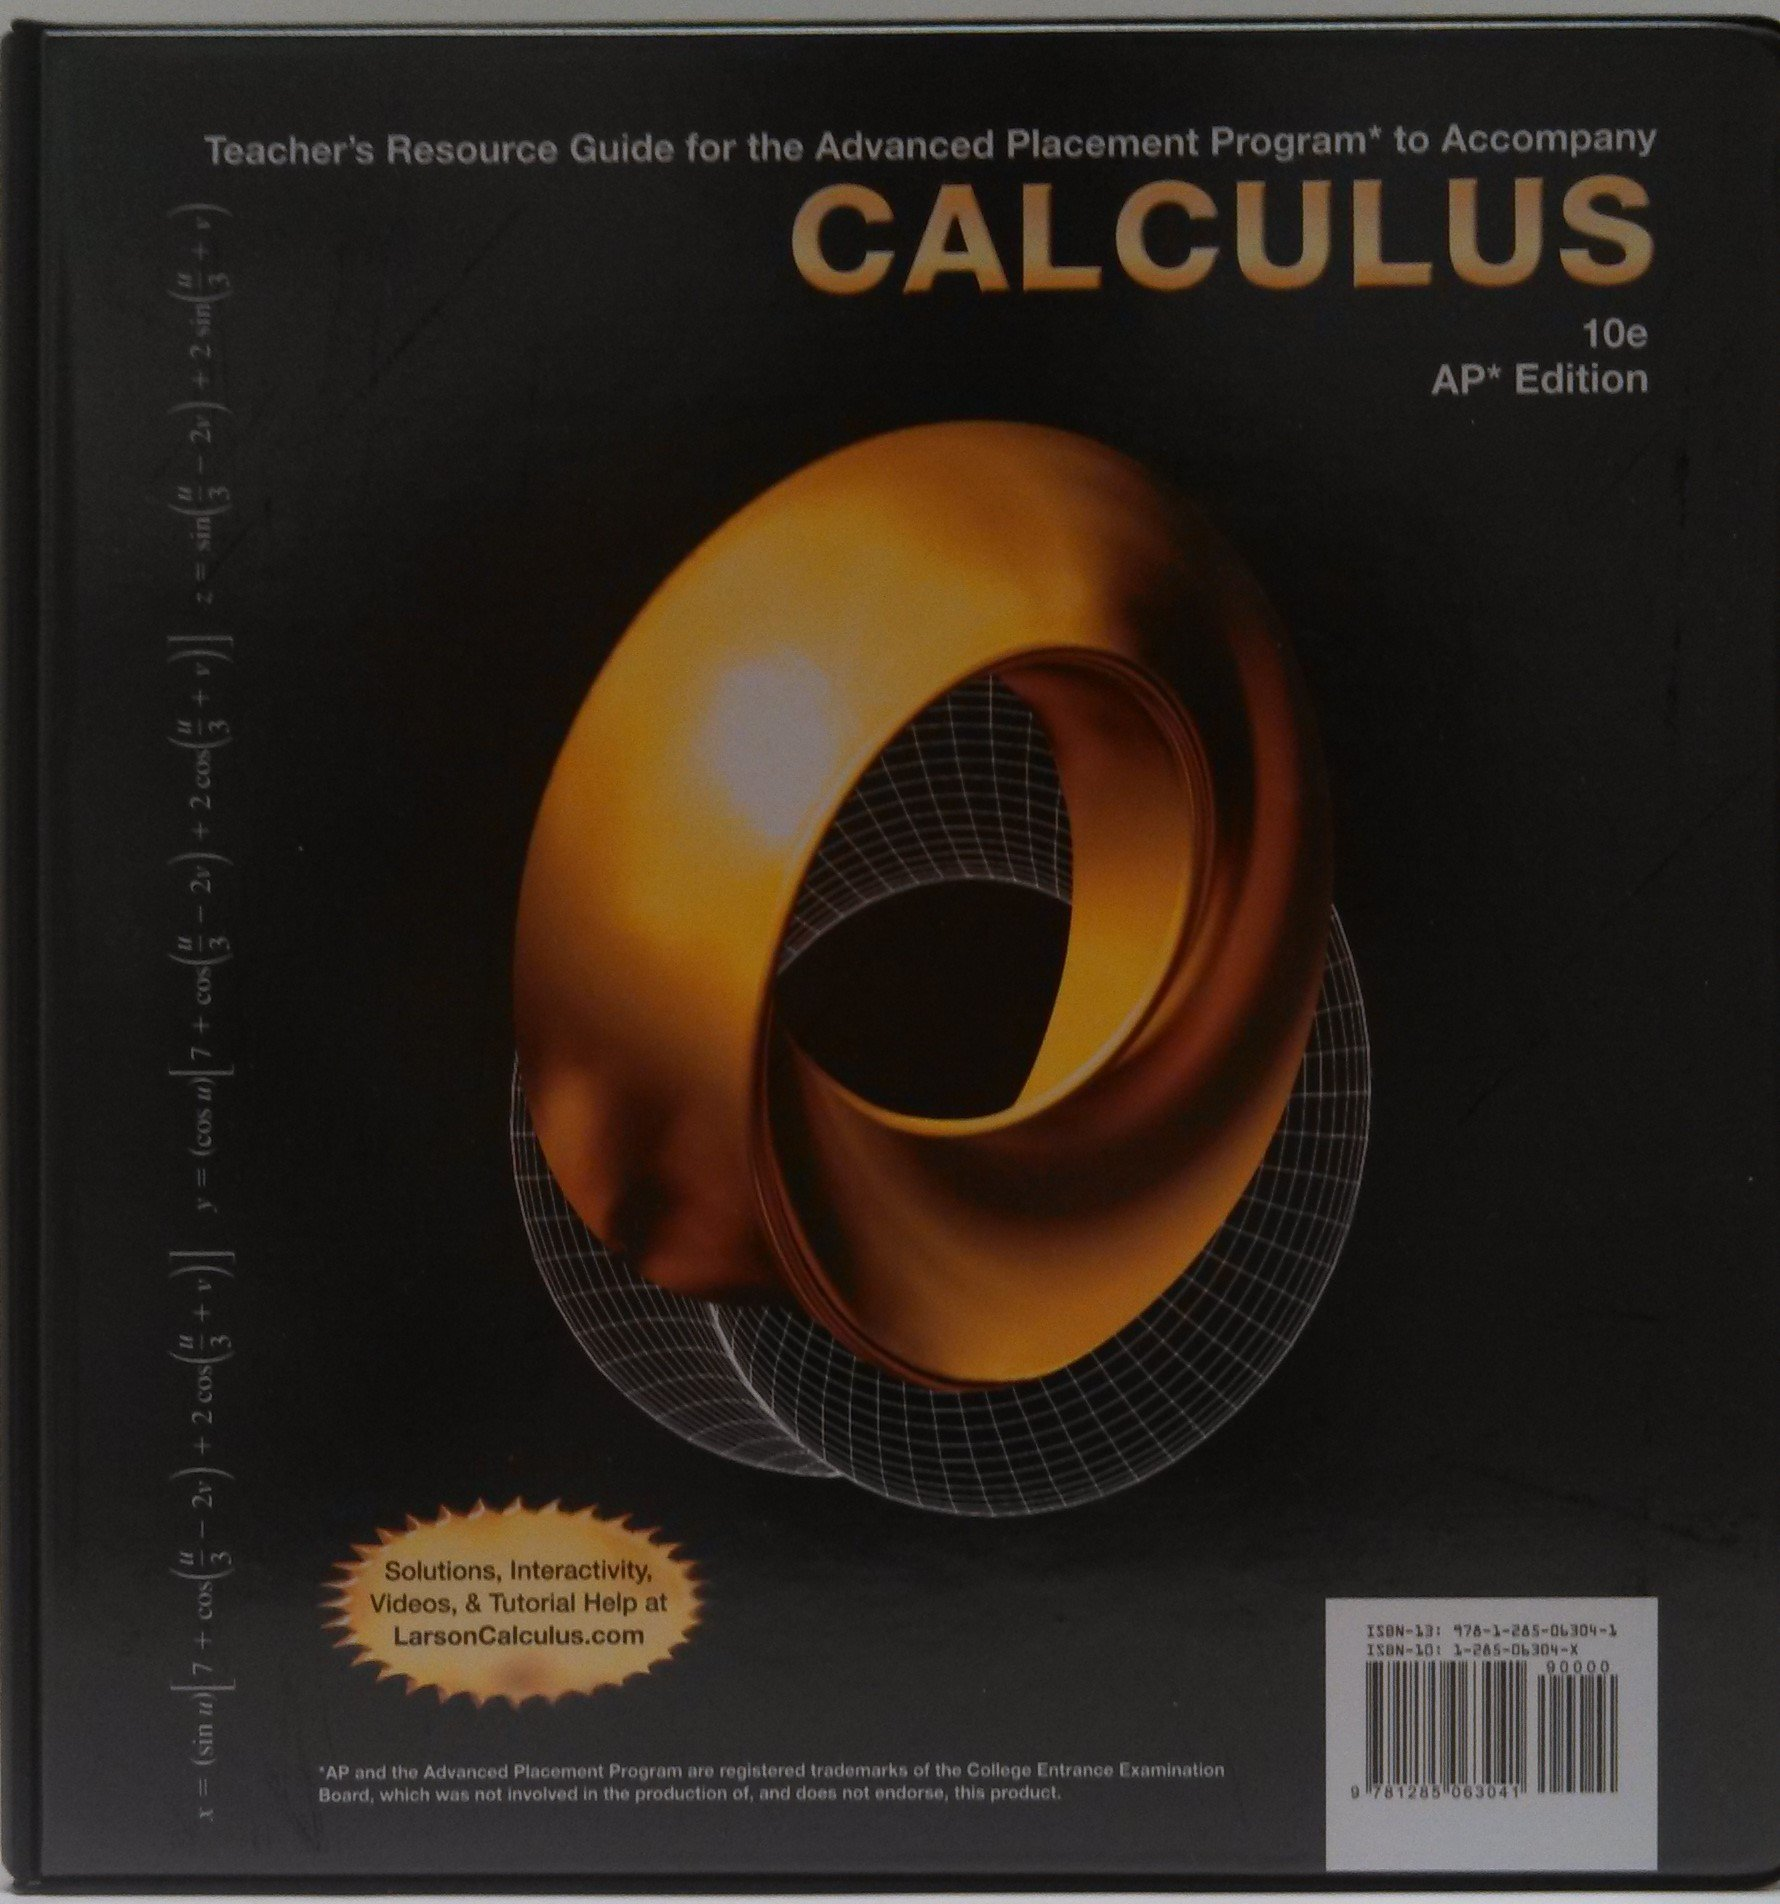 Calculus teachers resource guide for the advanced placement calculus teachers resource guide for the advanced placement program by larson and edwards 10th edition ap edition amazon books fandeluxe Images